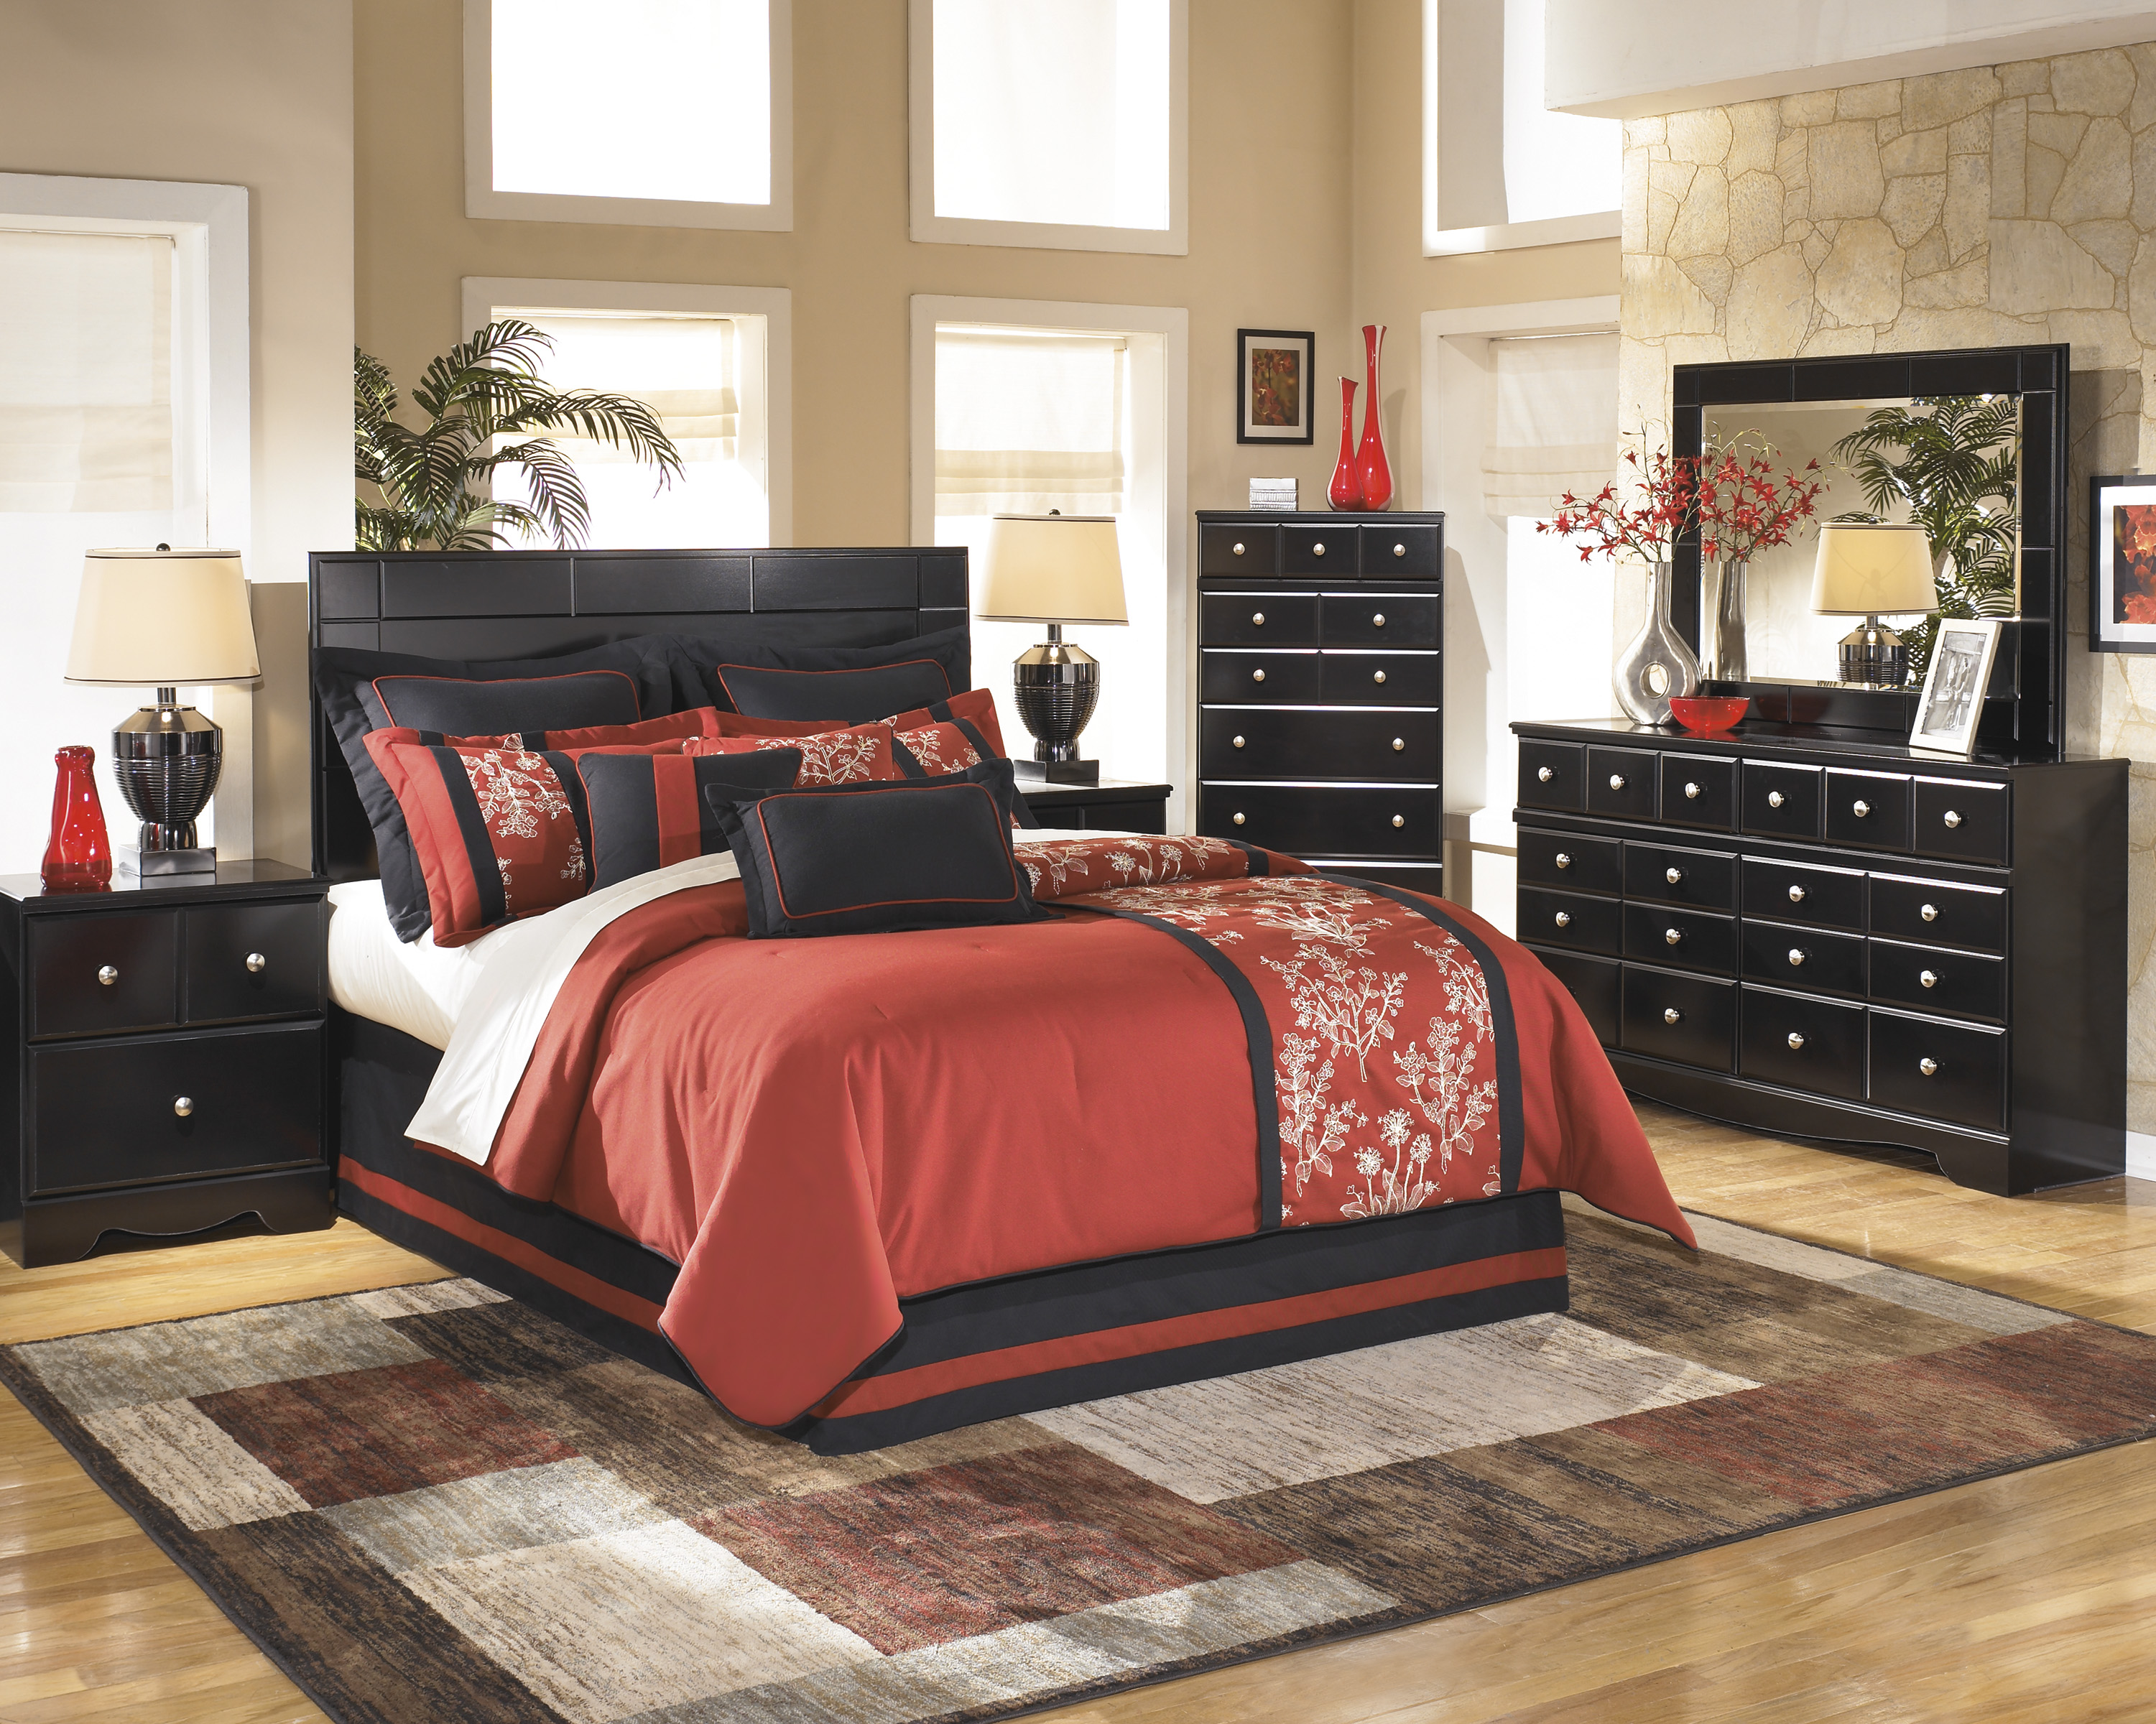 under rent perfect king cheap full twin bedroom own center sets to ashley aarons furniture wooden frames box and credit classy spring at mattress size beds offers queen card new bed best